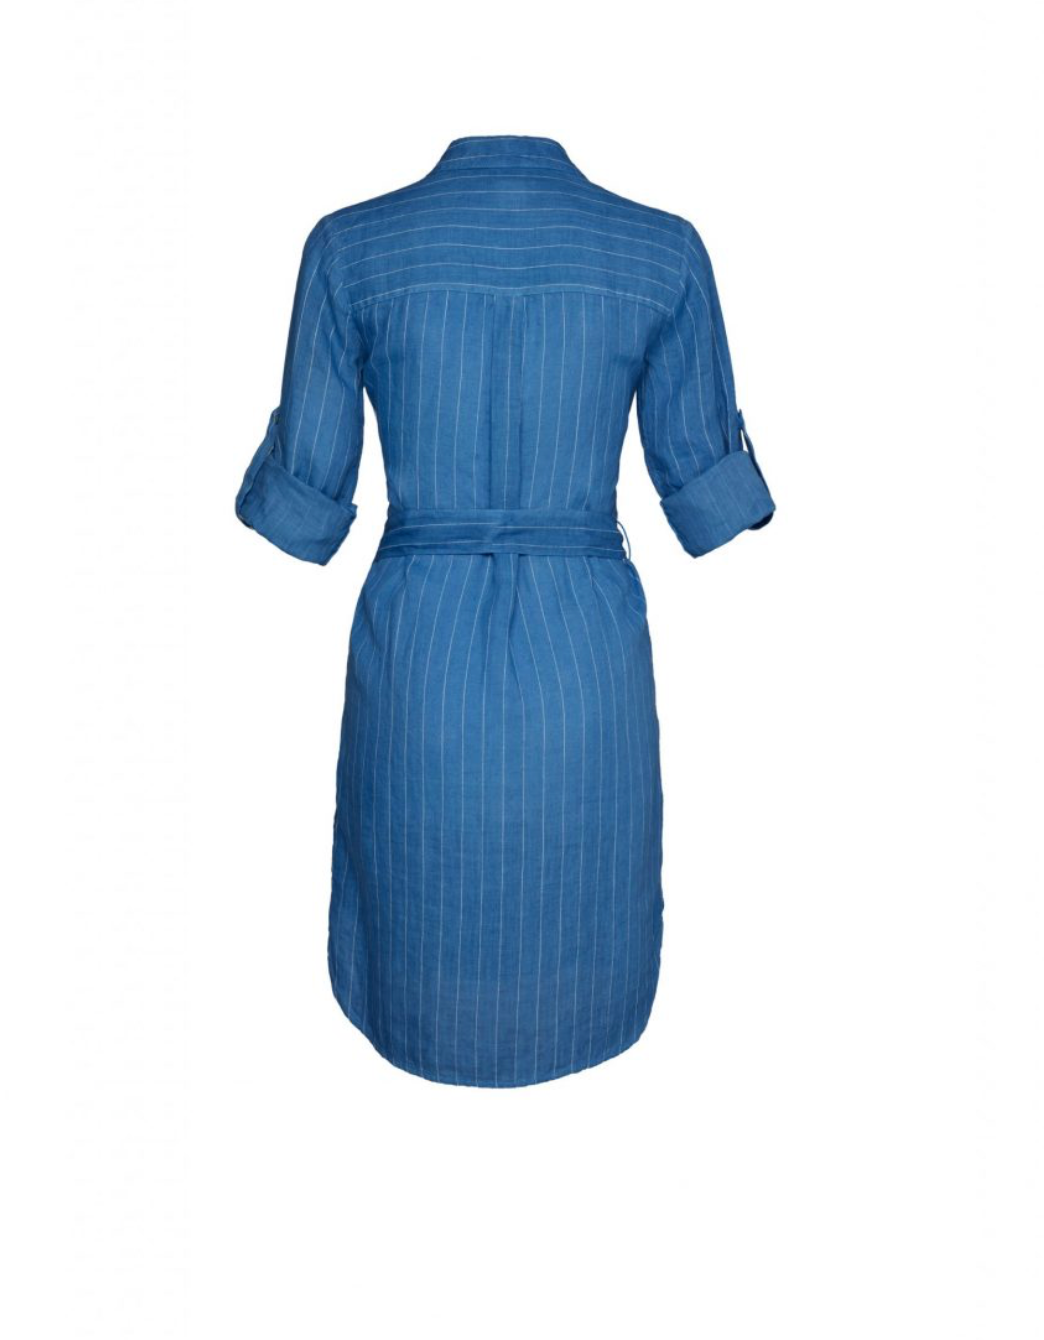 120% Lino Striped Linen Shirt-Dress in Harbour Blue